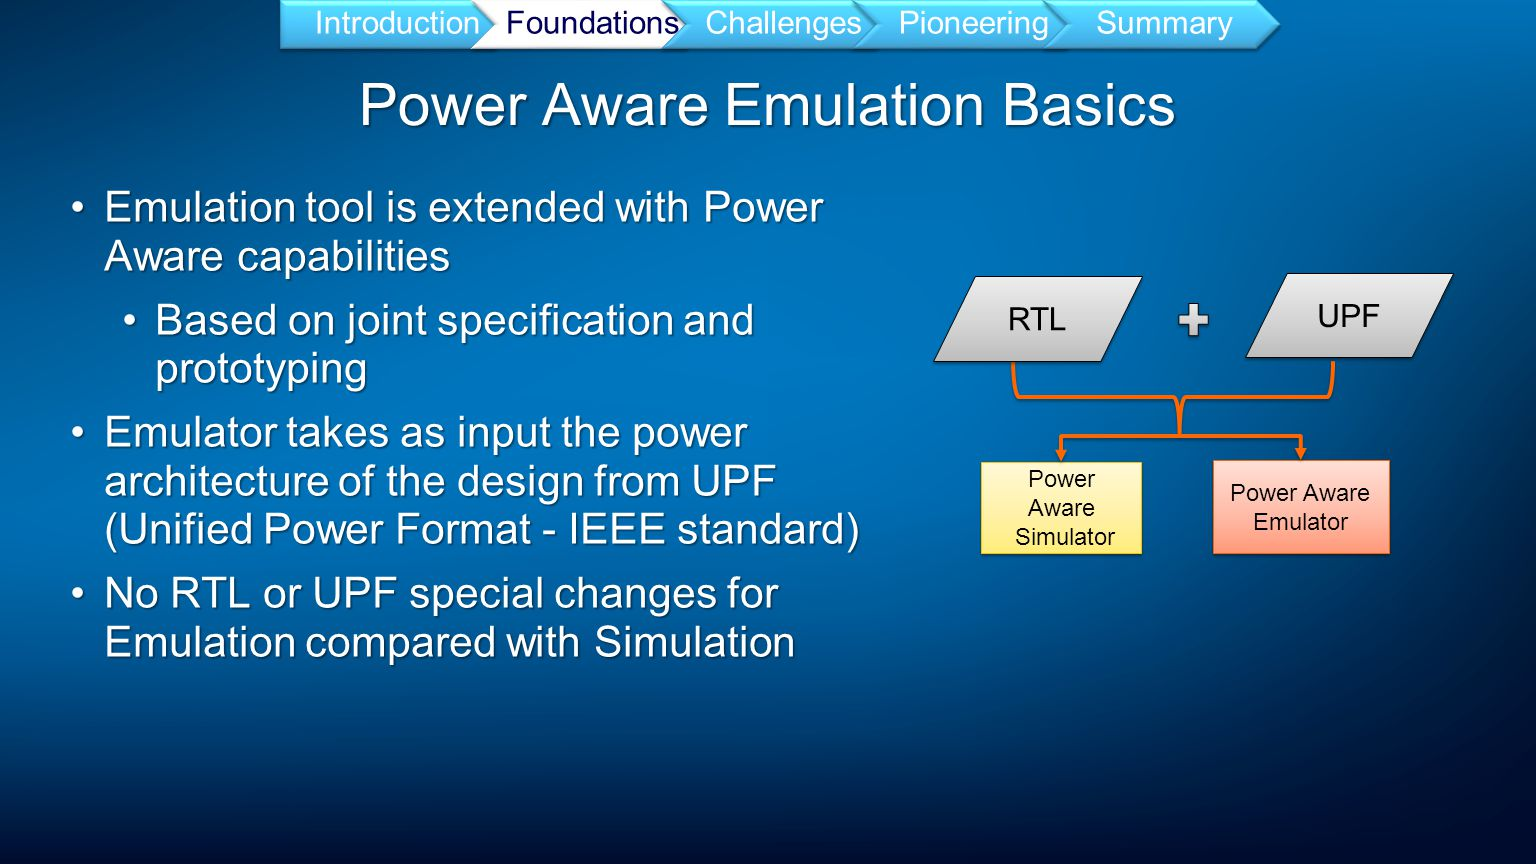 Power Aware Emulation Basics IntroductionFoundationsChallengesPioneeringSummary Emulation tool is extended with Power Aware capabilitiesEmulation tool is extended with Power Aware capabilities Based on joint specification and prototypingBased on joint specification and prototyping Emulator takes as input the power architecture of the design from UPF (Unified Power Format - IEEE standard)Emulator takes as input the power architecture of the design from UPF (Unified Power Format - IEEE standard) No RTL or UPF special changes for Emulation compared with SimulationNo RTL or UPF special changes for Emulation compared with Simulation UPF Power Aware Simulator Power Aware Simulator Power Aware Emulator Power Aware Emulator RTL